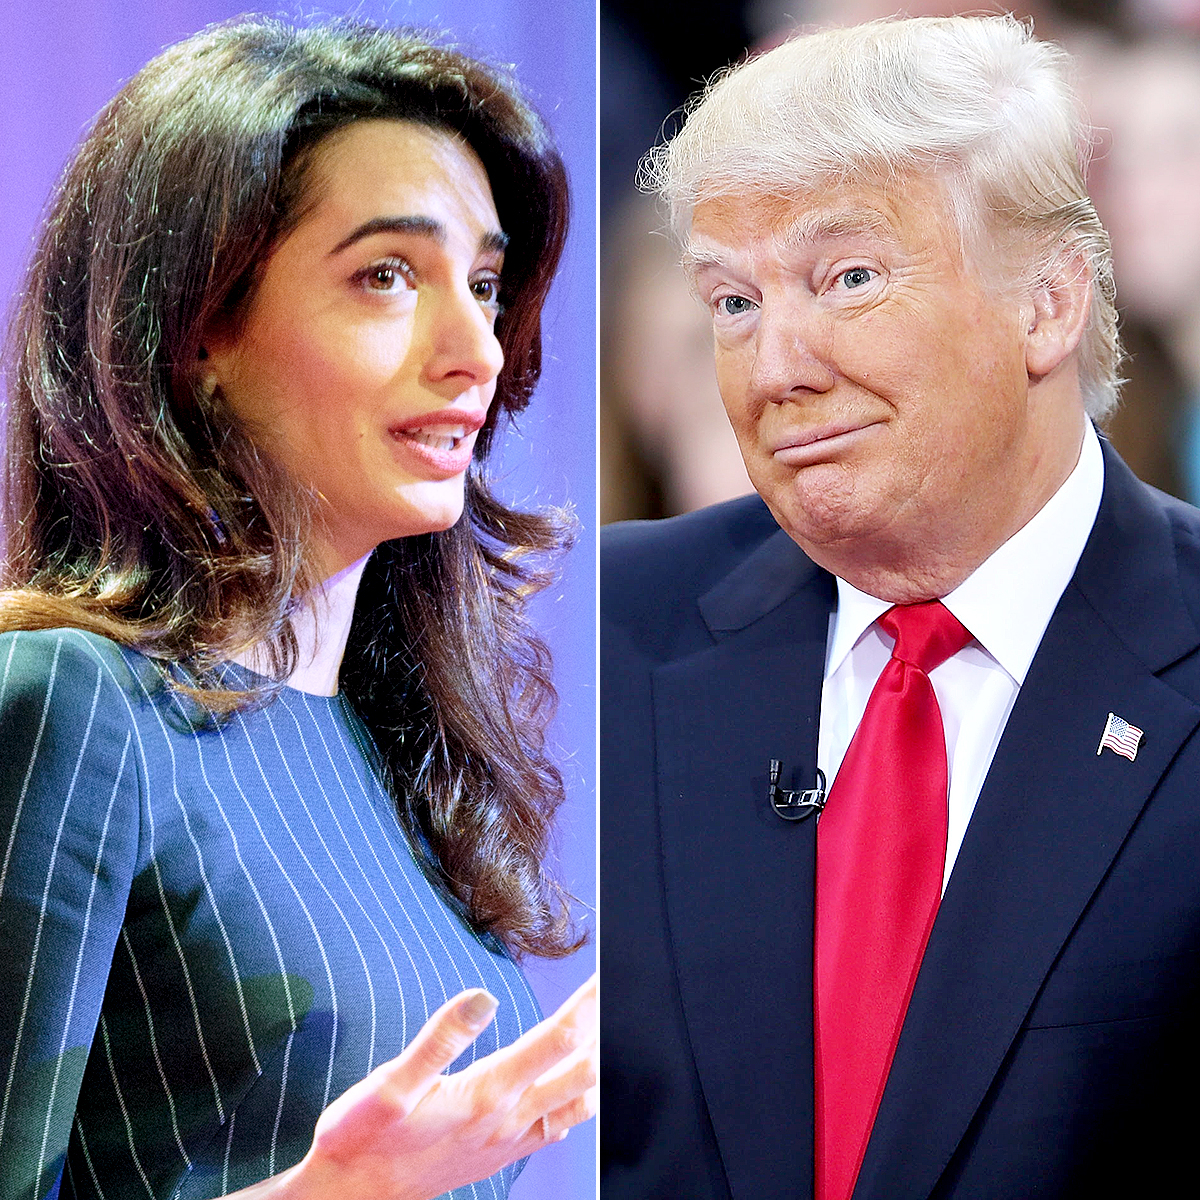 Amal Clooney addresses the Texas Conference for Women held at the Austin Convention Center on November 15, 2016 in Austin, Texas; Donald Trump appears at an NBC Town Hall at the Today Show on April 21, 2016 in New York City.